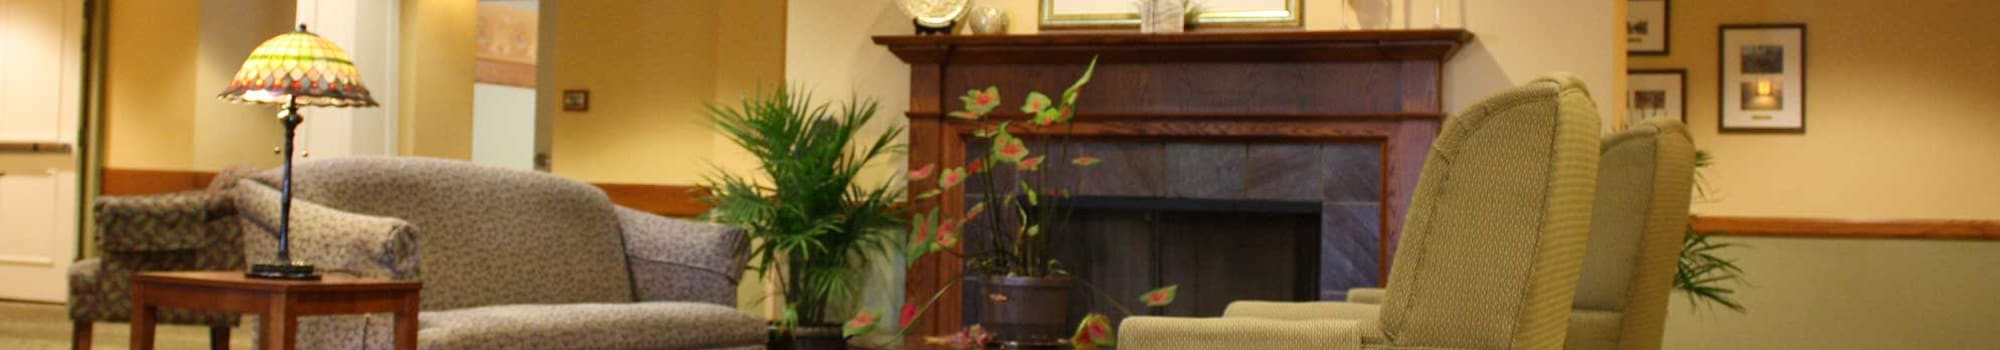 Senior living options in Country Club Hills, IL